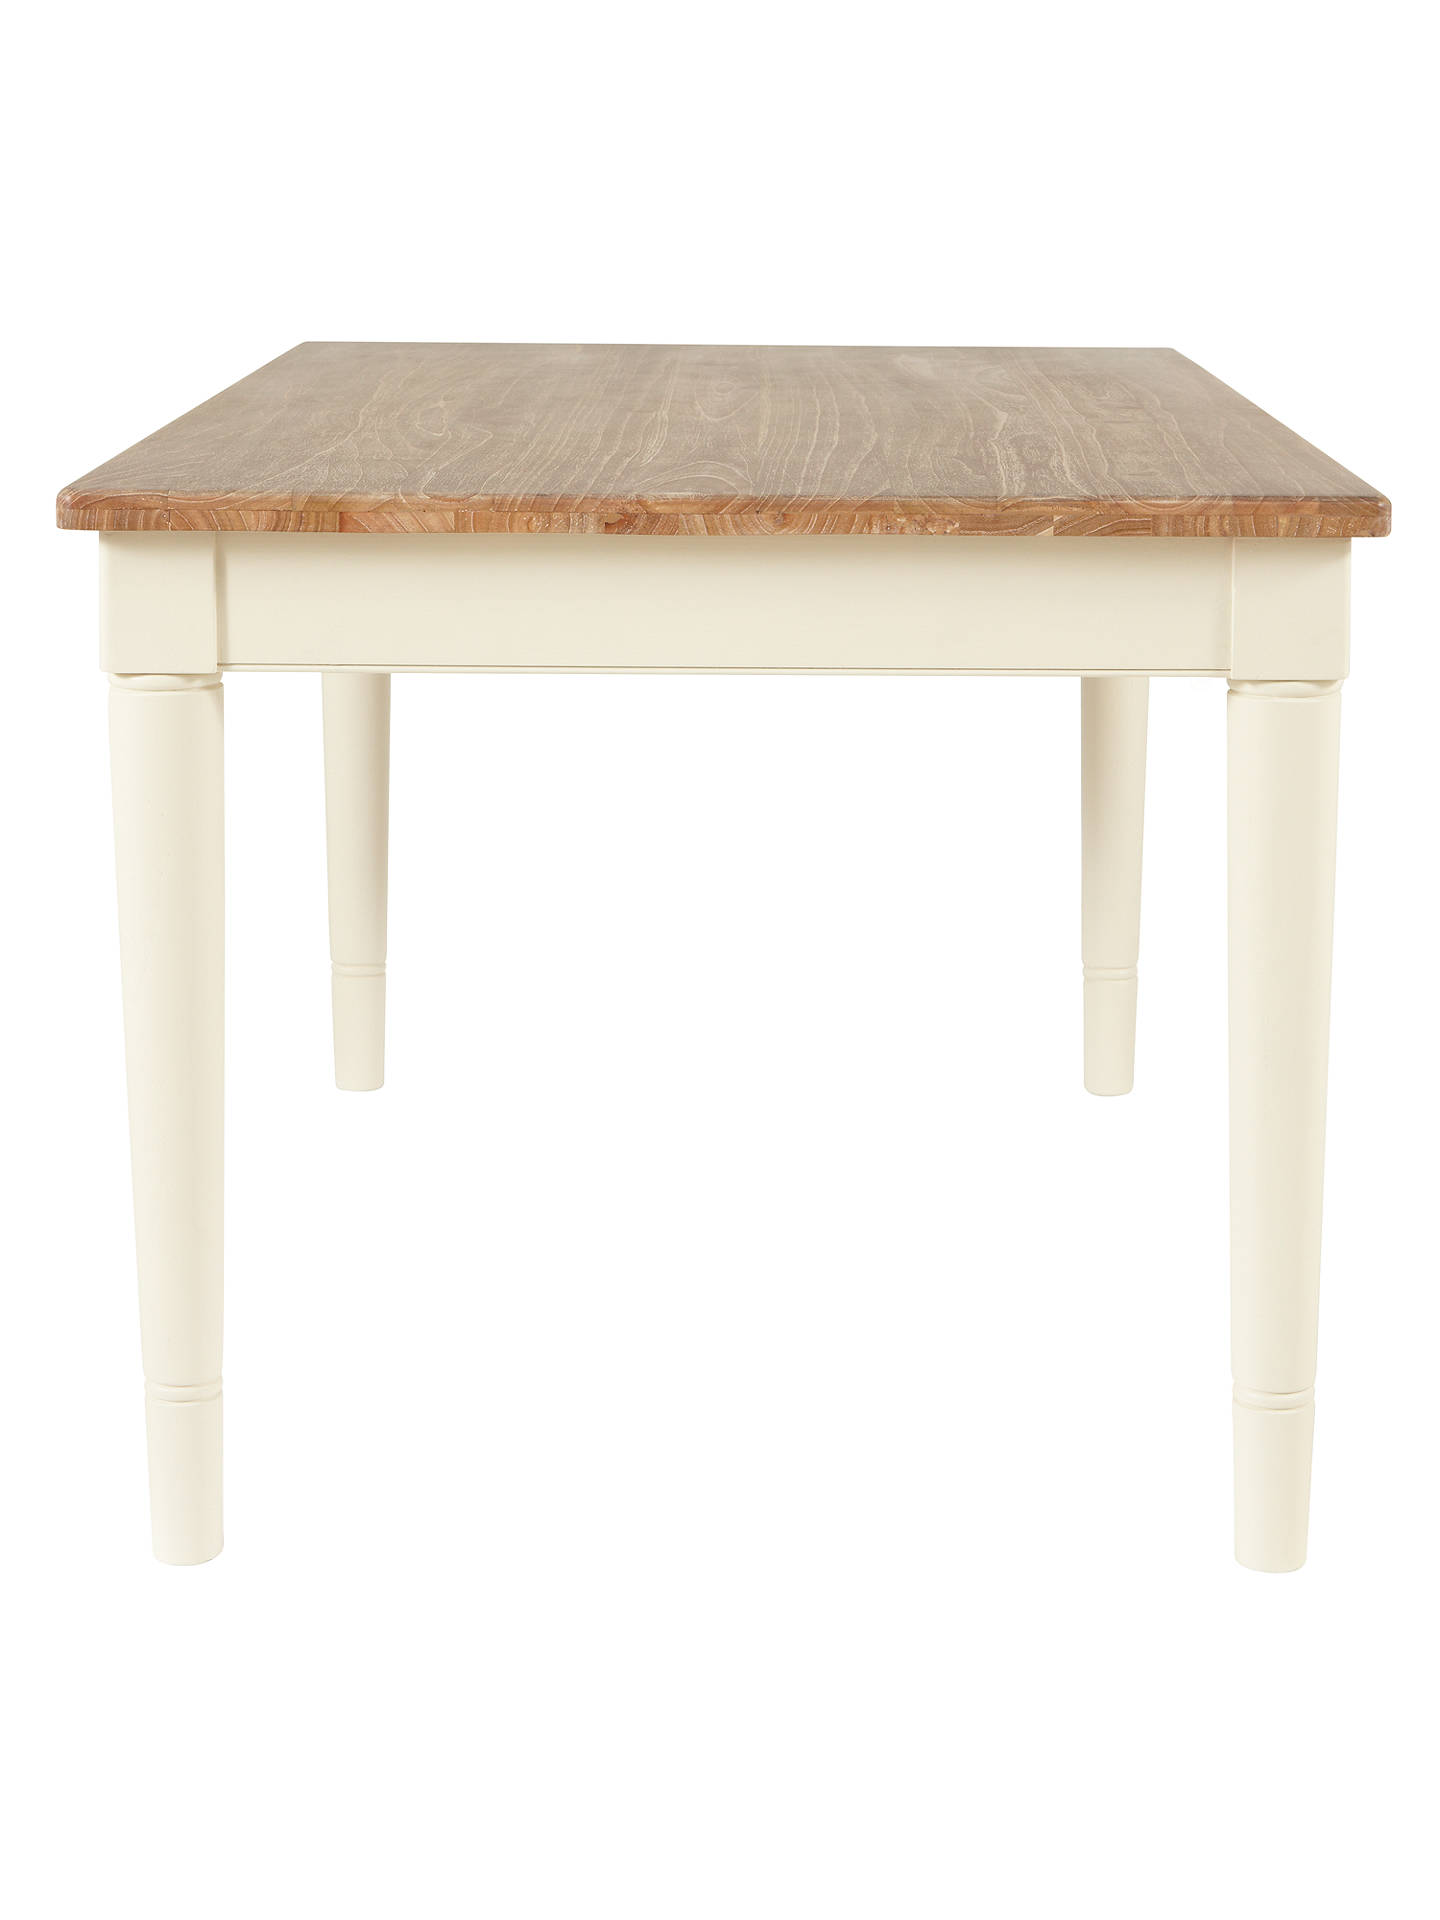 BuyJohn Lewis & Partners Drift Rectangular 6 Seater Dining Table, Cream Online at johnlewis.com